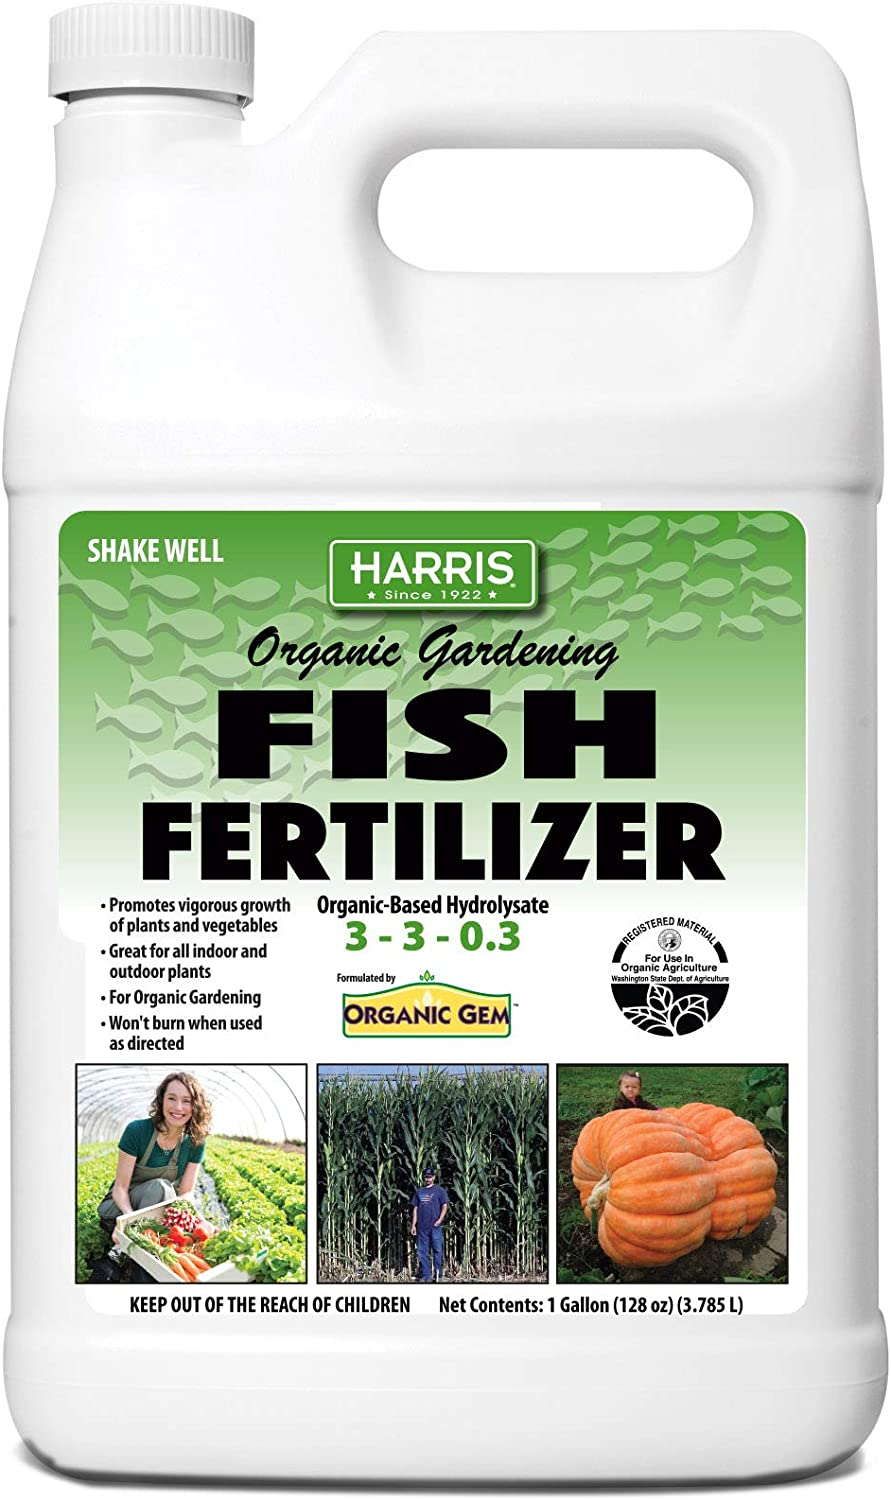 Harris Organic Plant Food and Plant Fertilizer, Hydrolyzed Liquid Fish Fertilizer Emulsion Great for Tomatoes and Vegetables, 3-3-0.3, 32oz (128oz (Gallon))